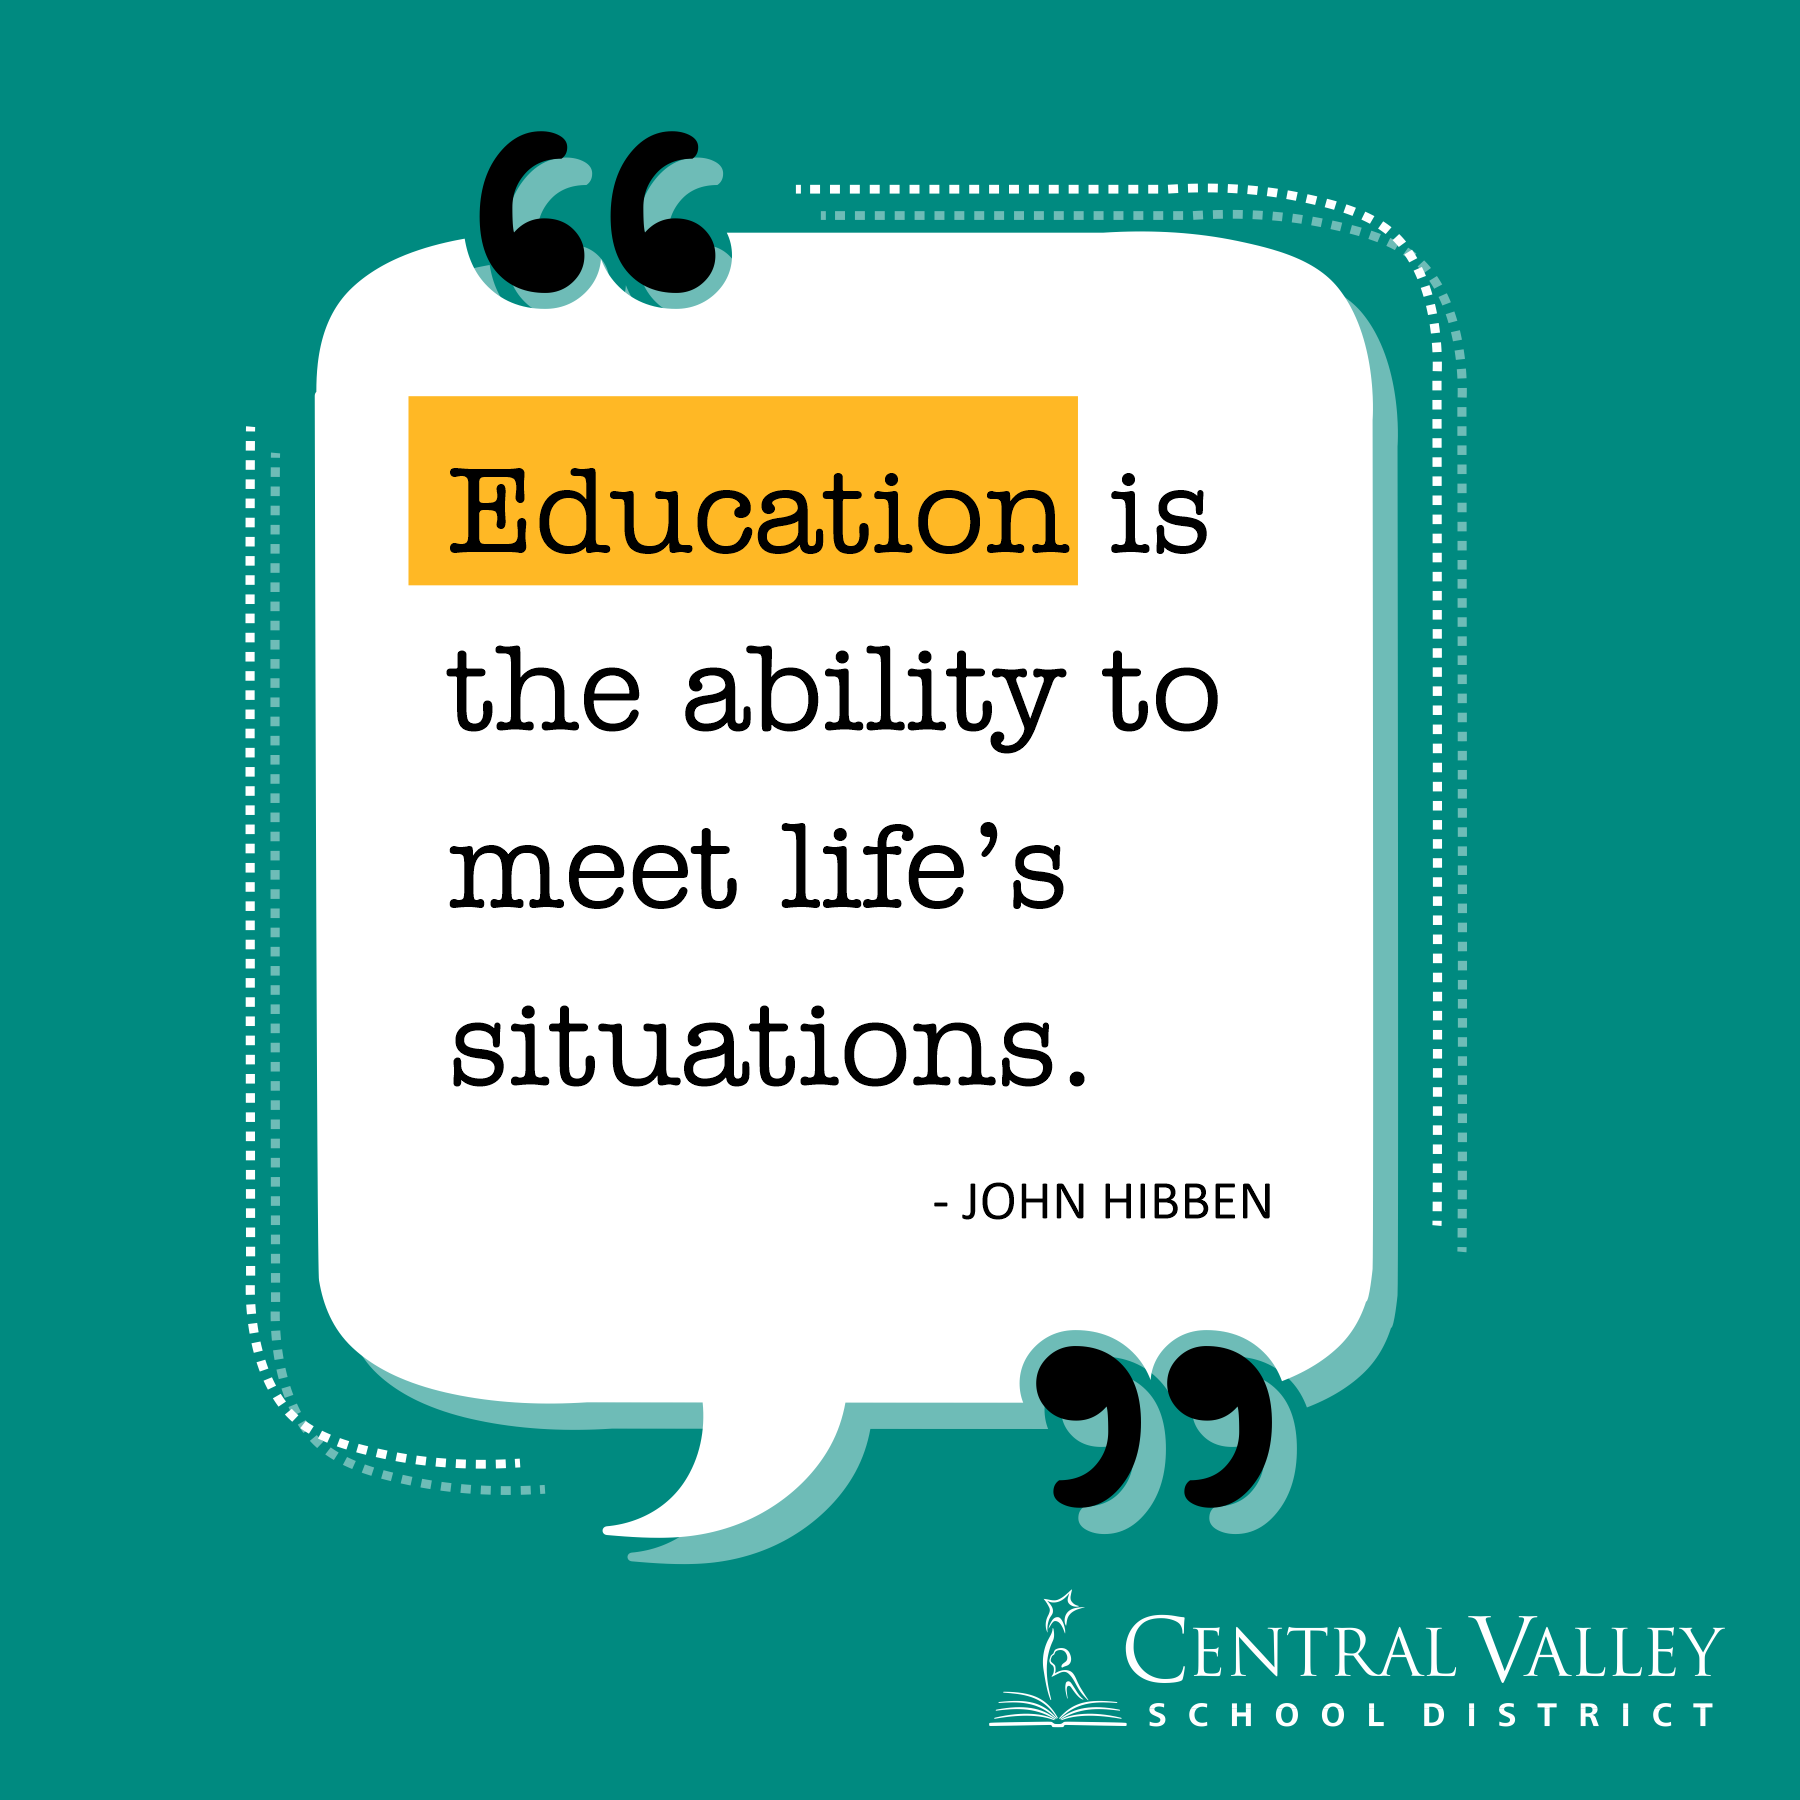 Education is ability to meet life's situations.